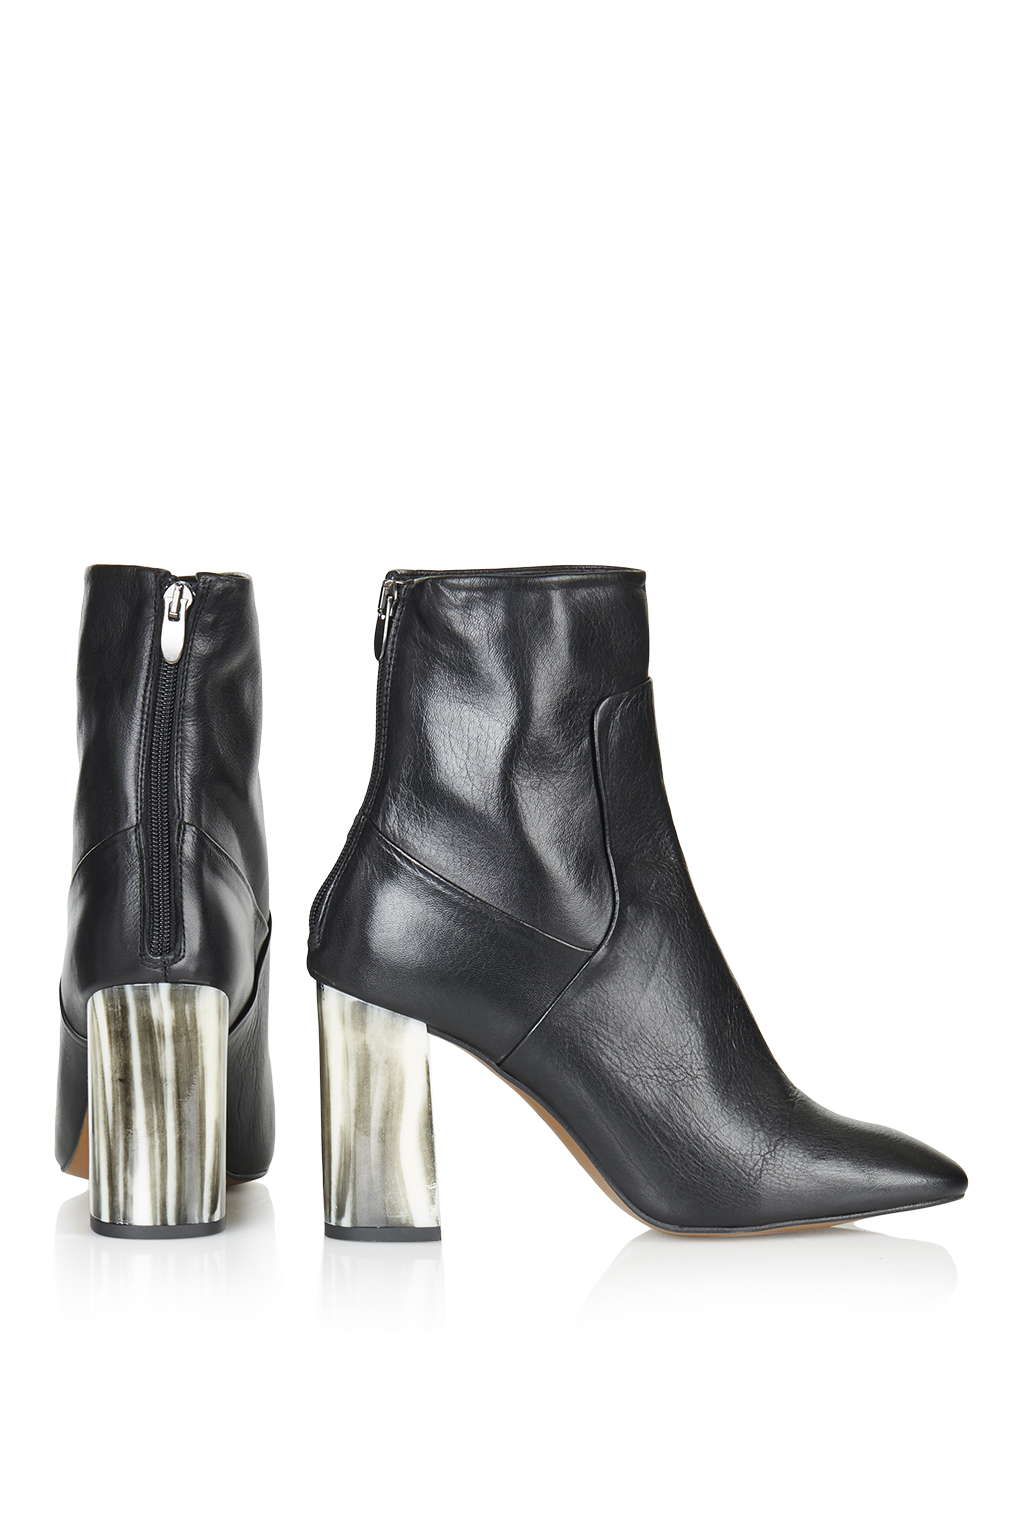 TOPSHOP Leather Muse Bone Heel Boots in Black